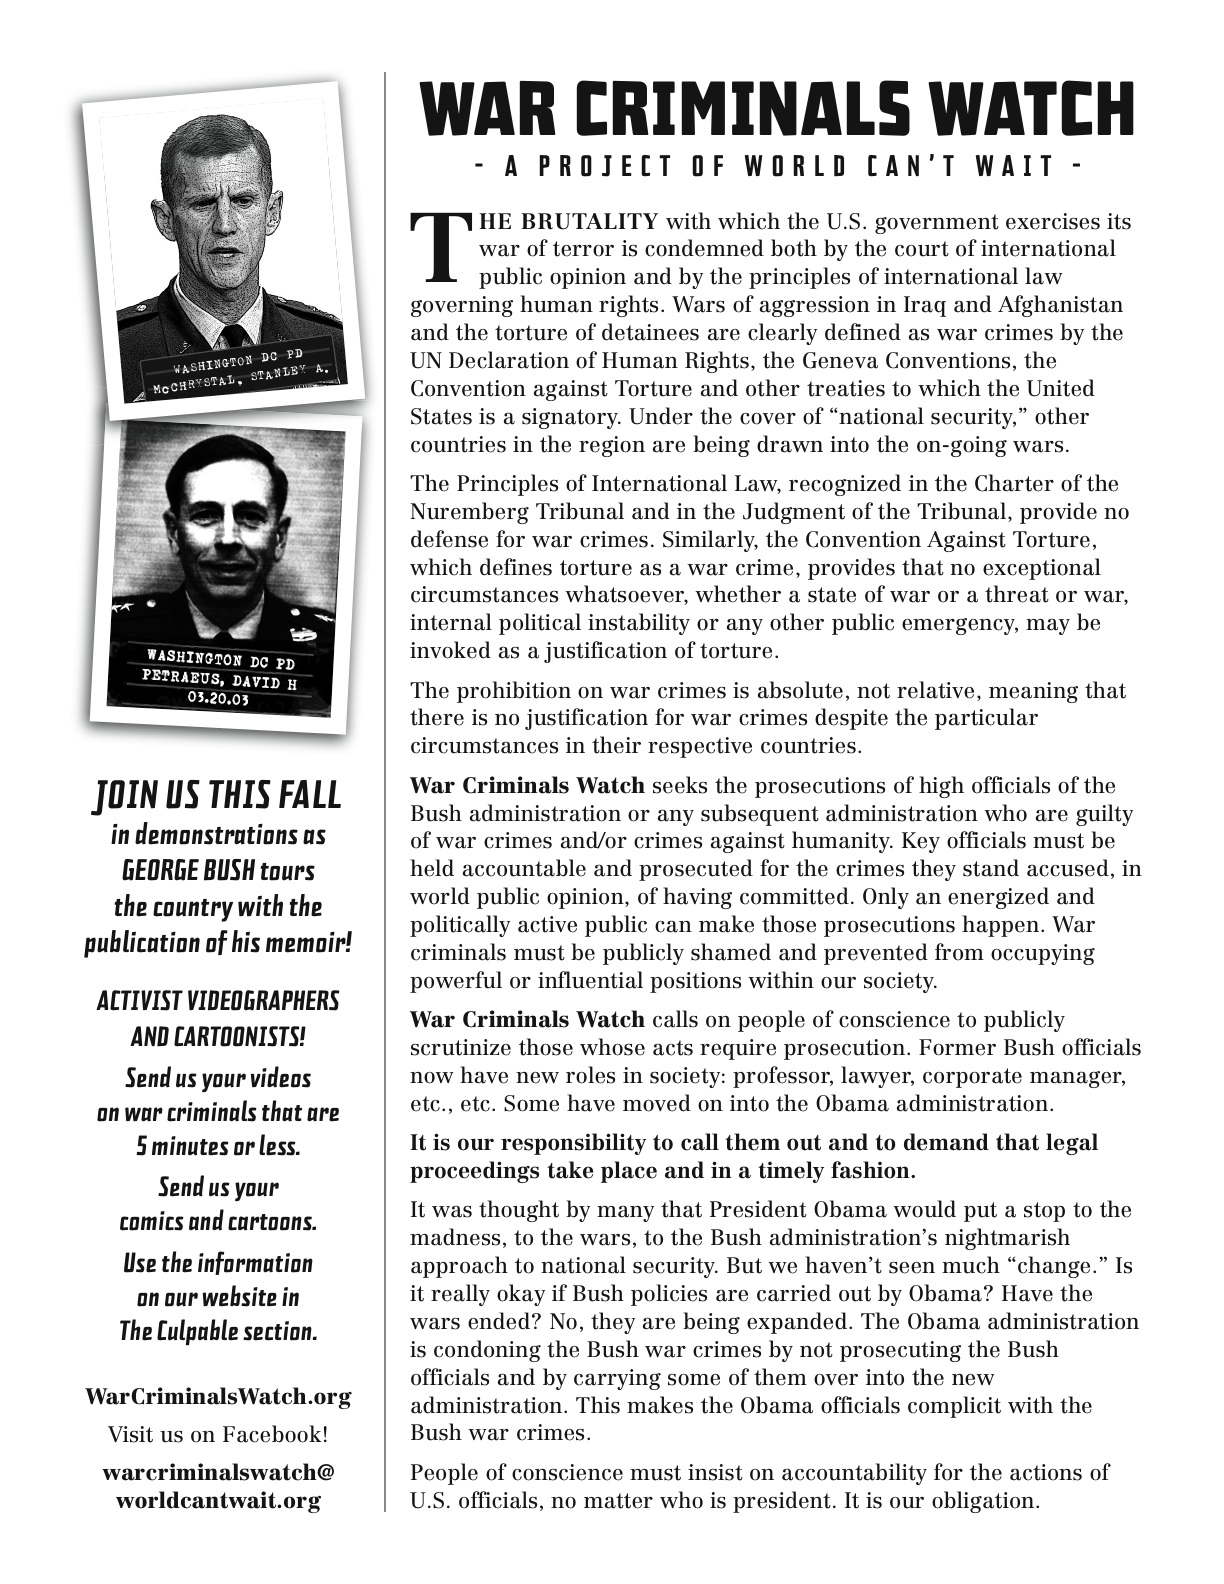 War Criminals Watch flier